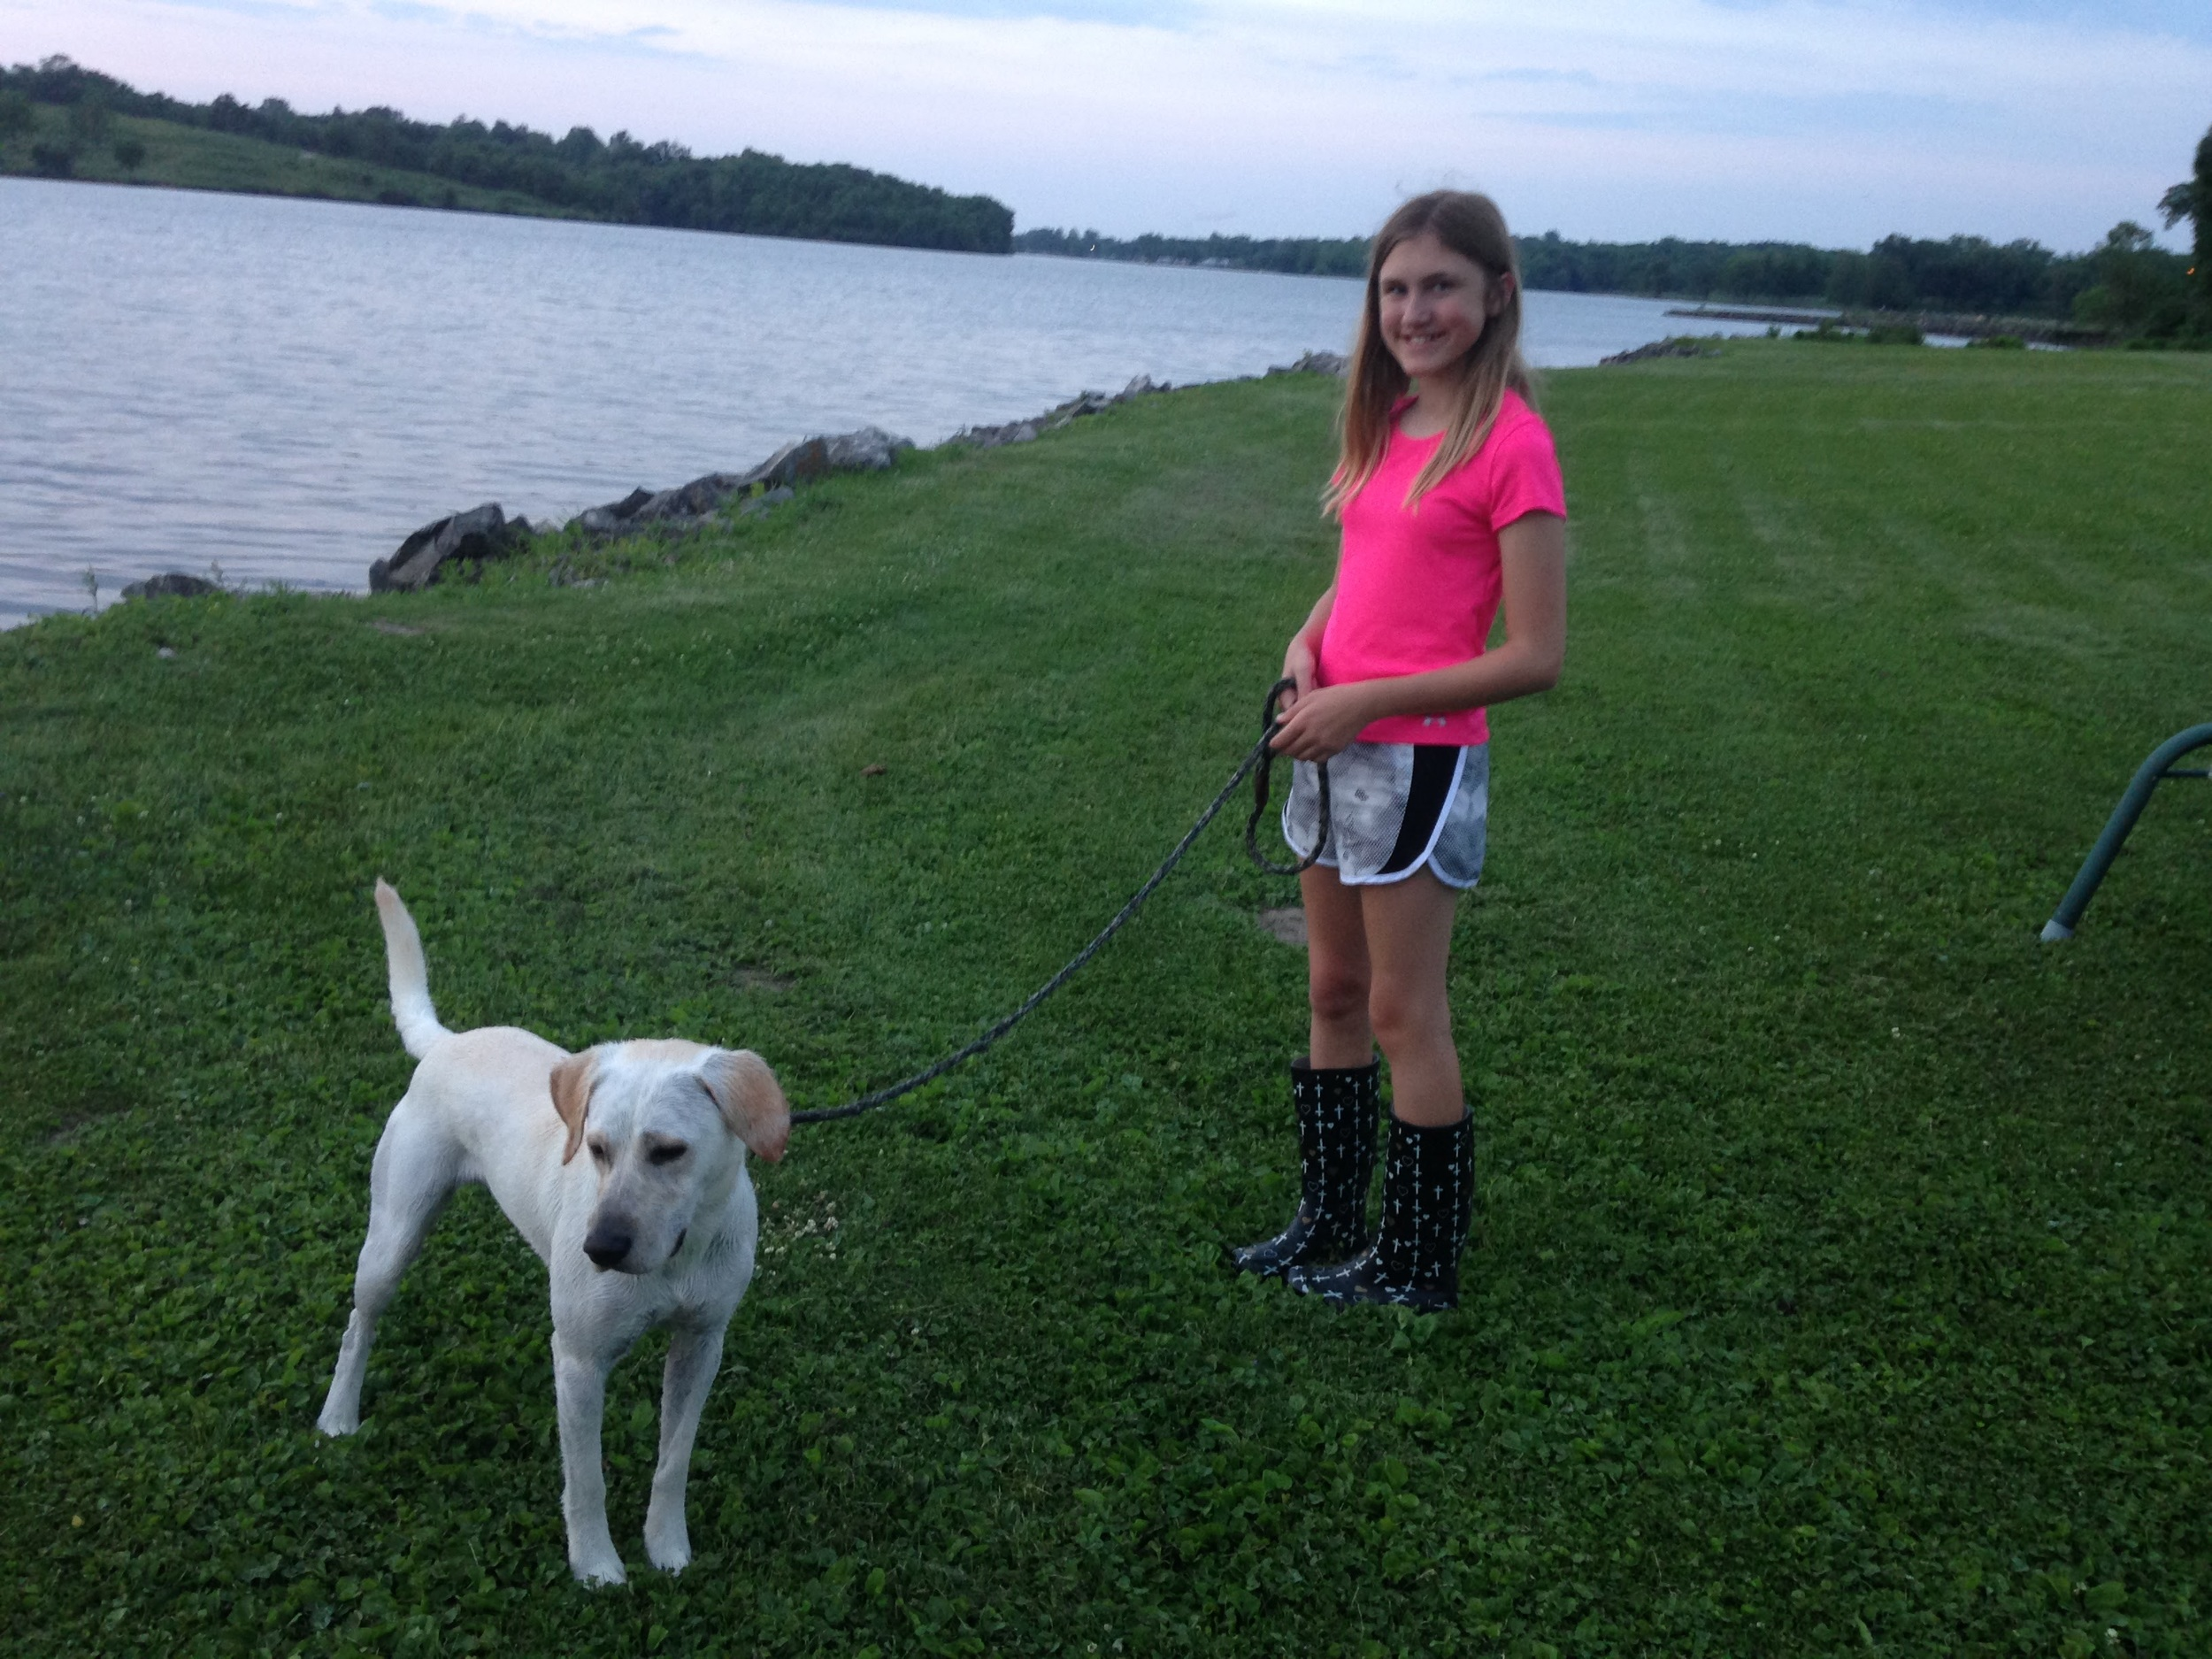 Ashlee-and-Willy-at-the-Lake.jpg